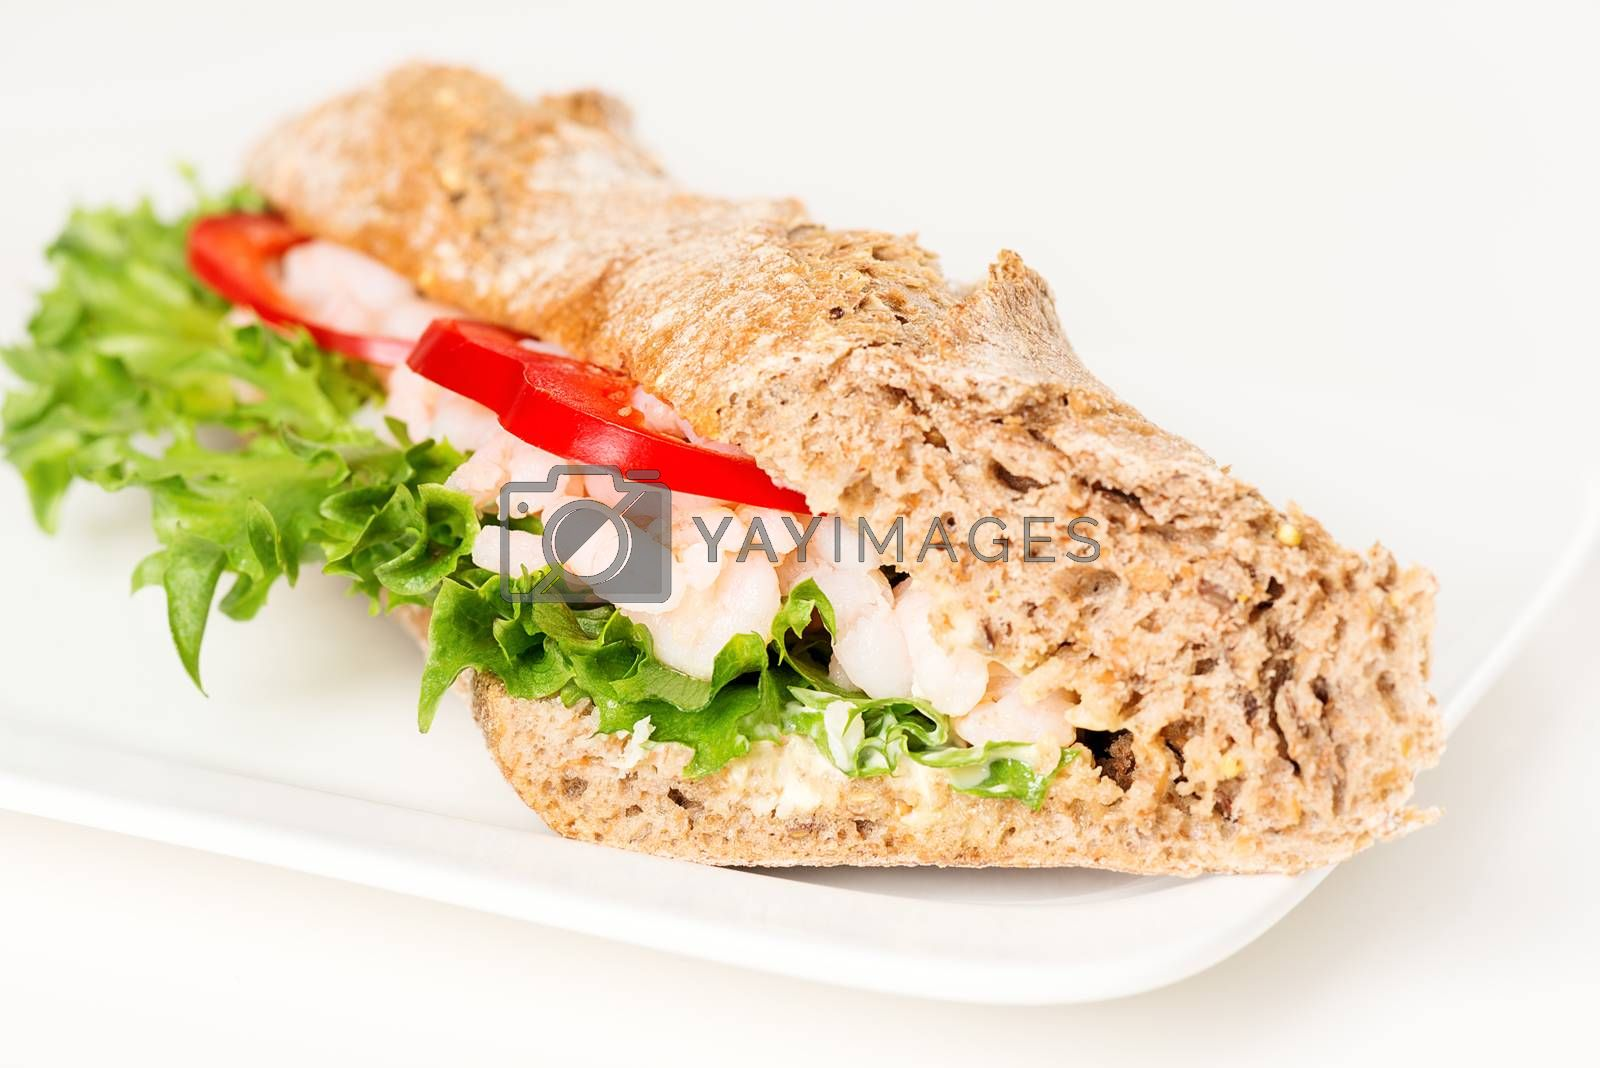 Prawn sandwich on white plate closeup by Nanisimova